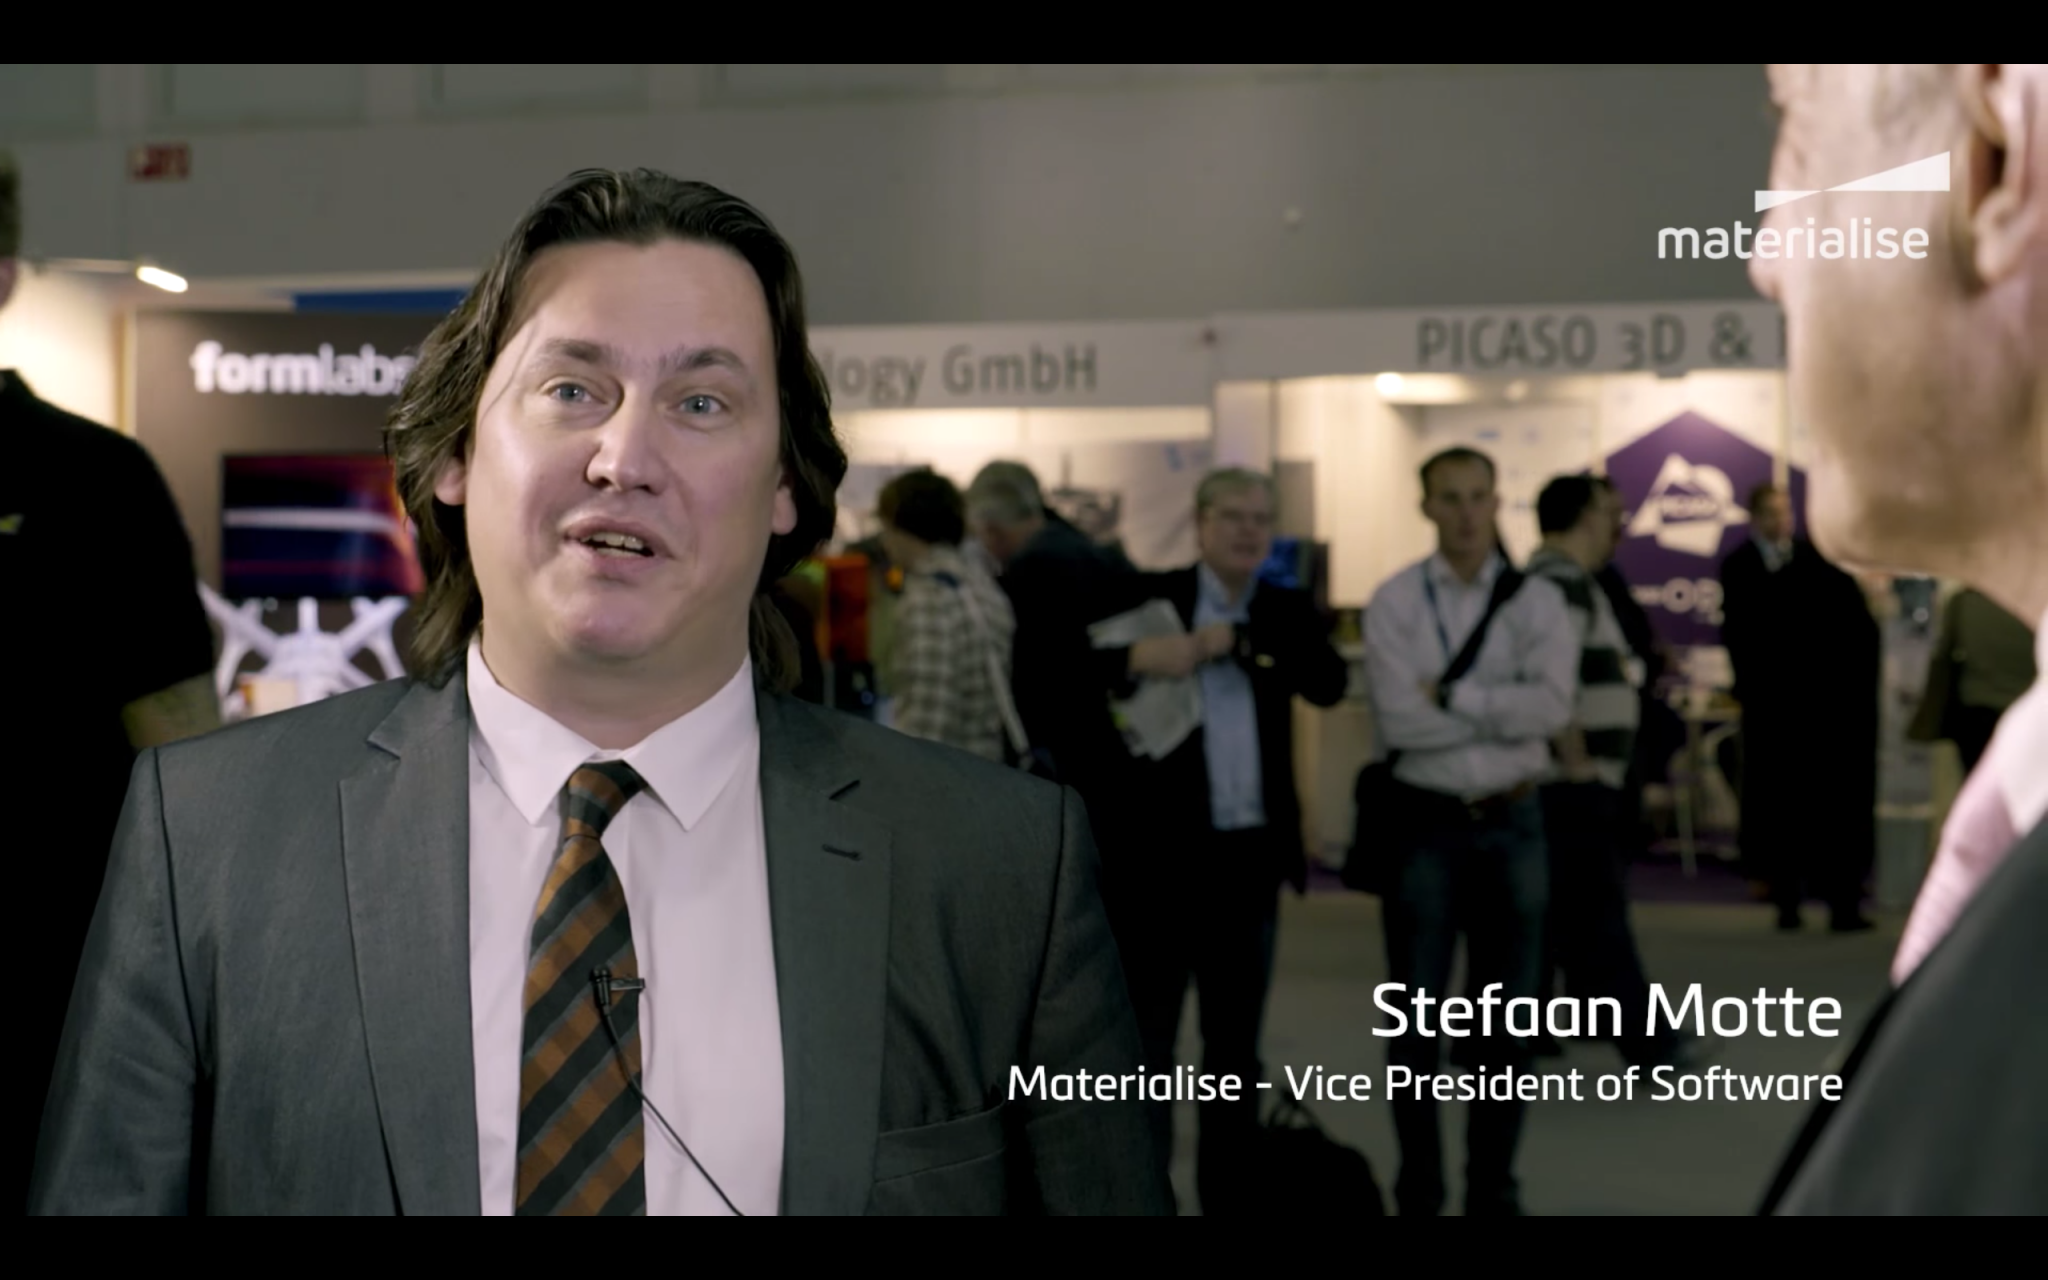 Stefaan Motte interviewed Andreas Saar of Siemens back at Formnext. Image via Materialise.